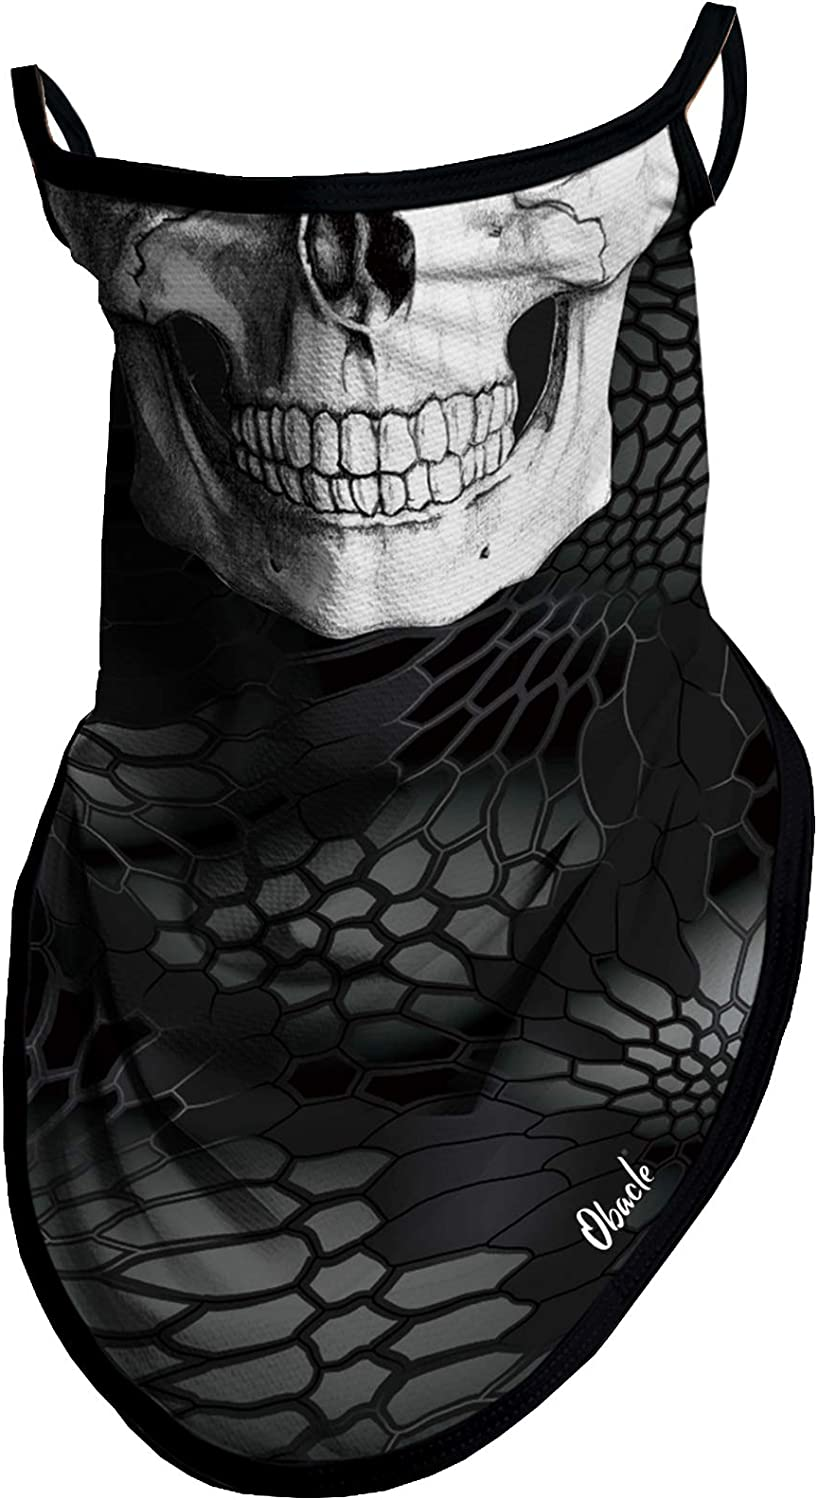 Obacle Max 80% OFF Bandana Face Mask with Loops Neck Ear Portland Mall Sc Gaiter